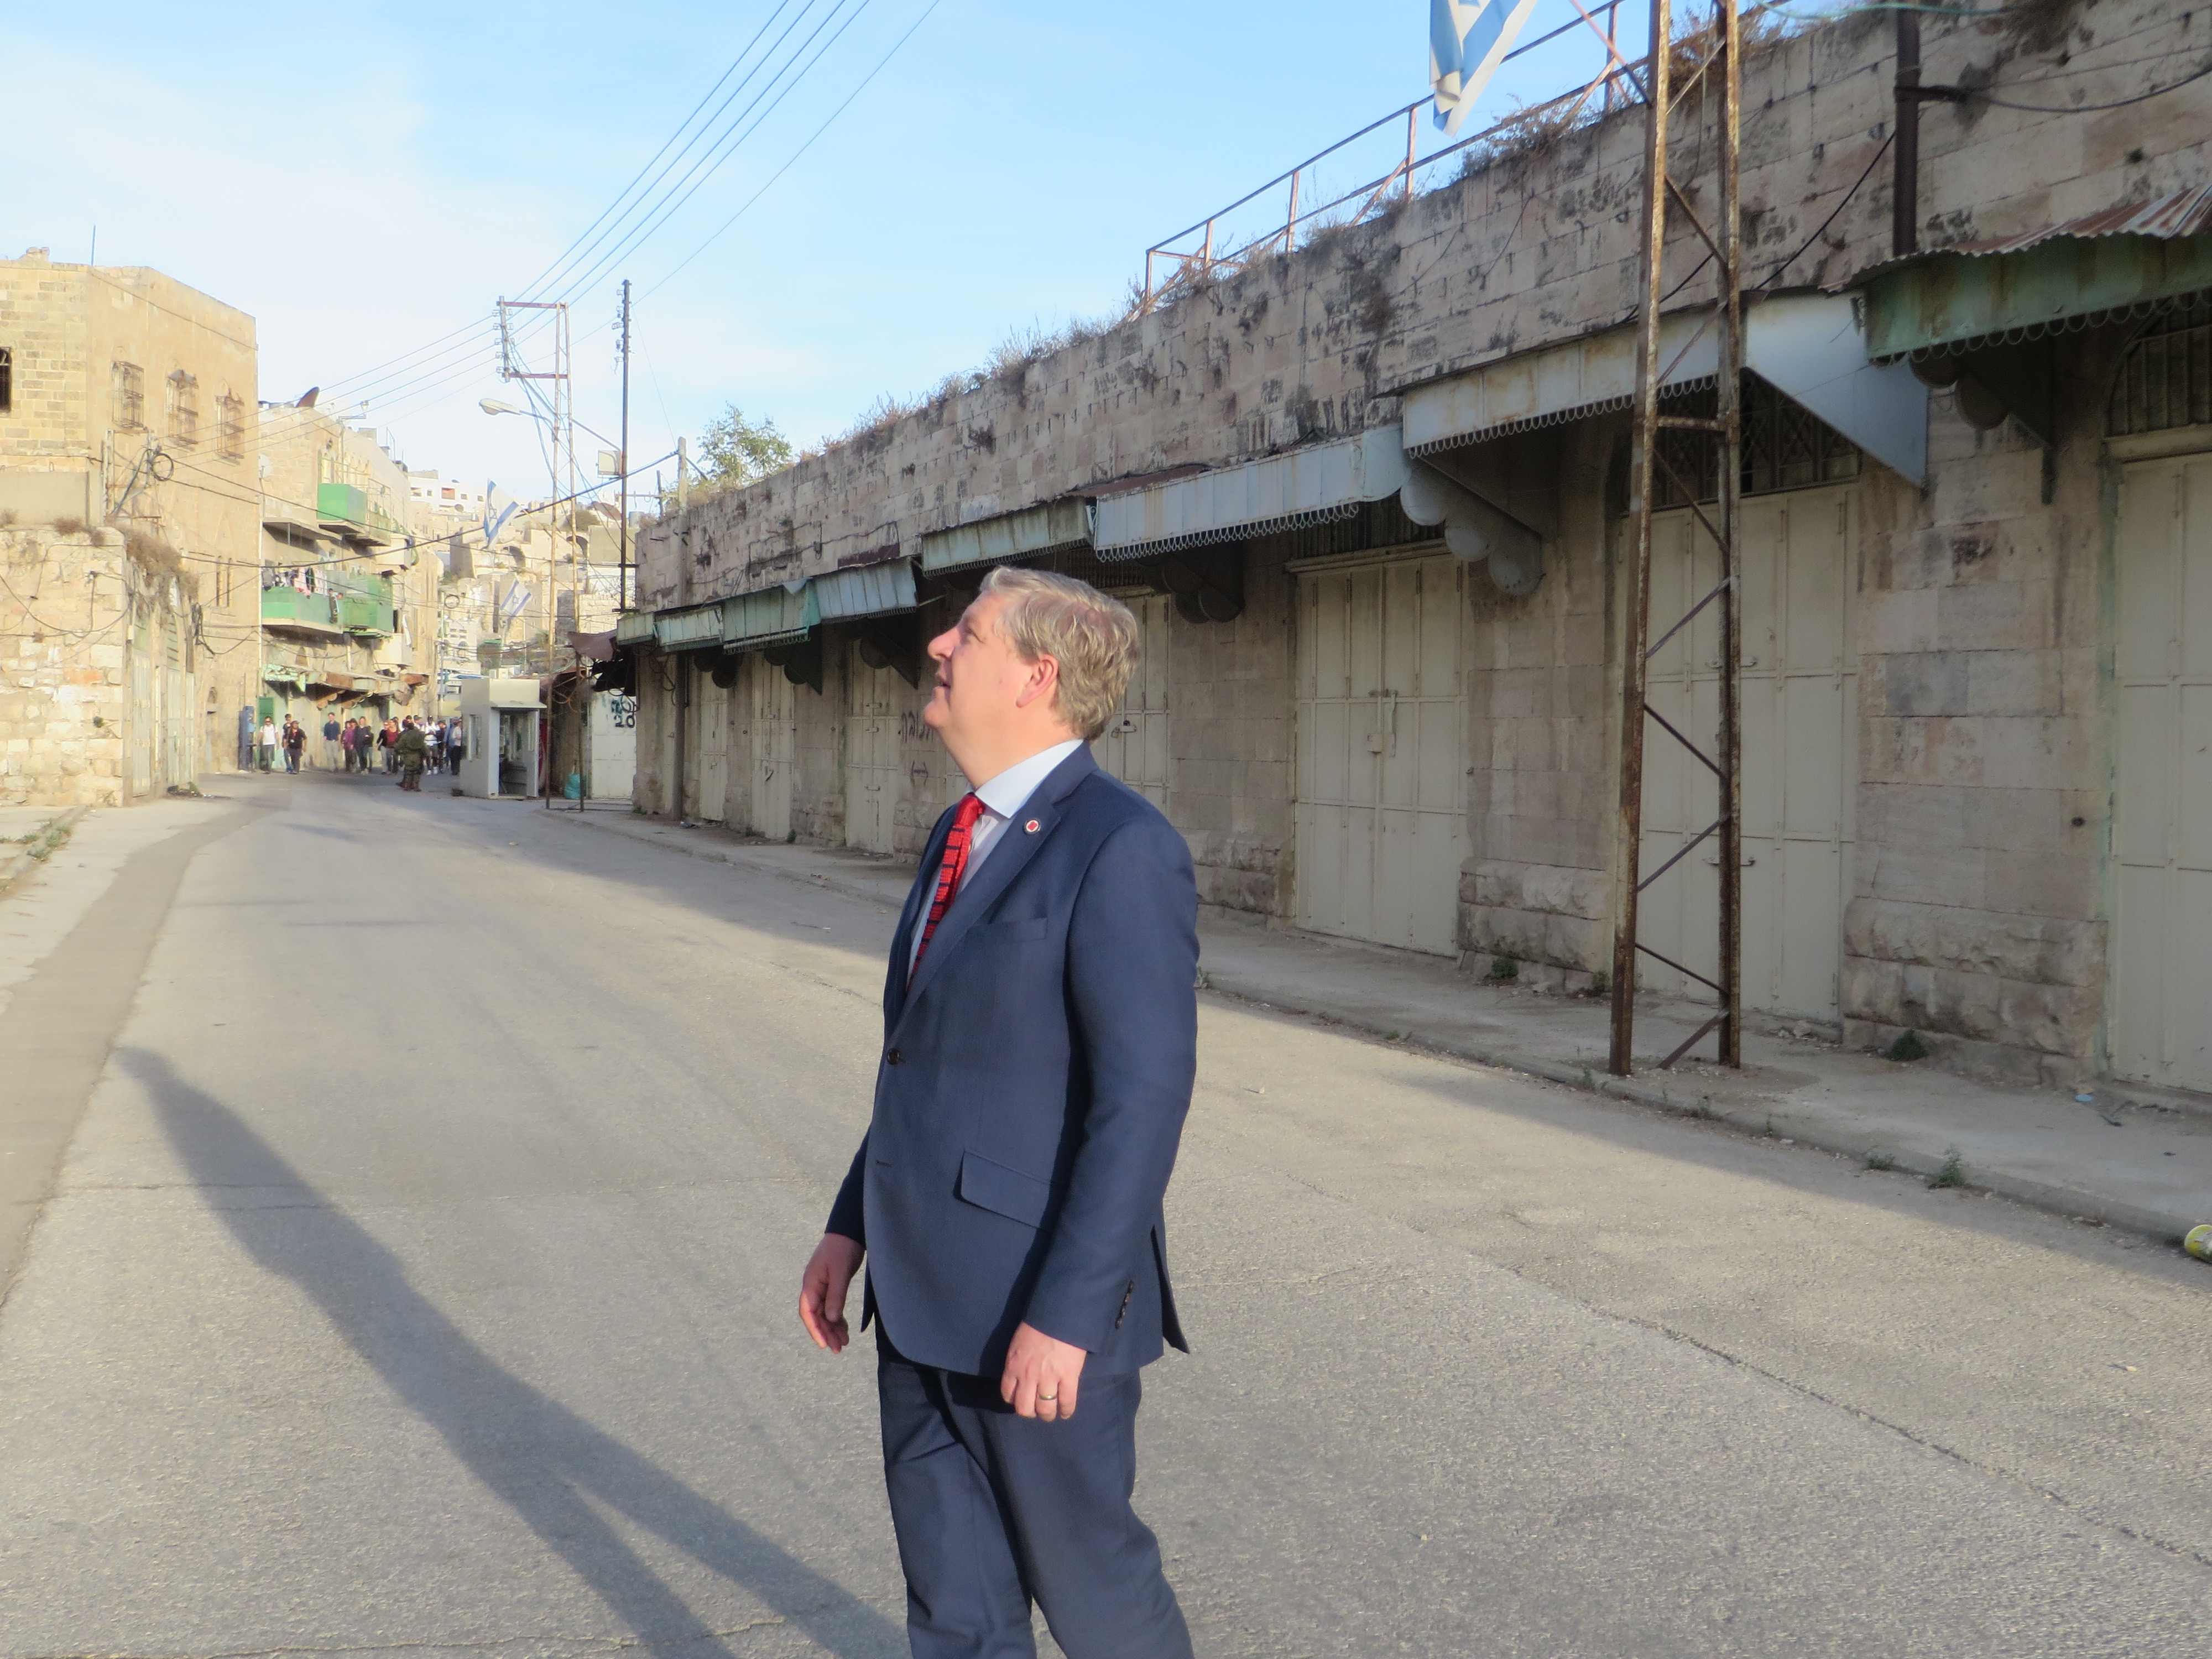 Angus Robertson MP in Hebron